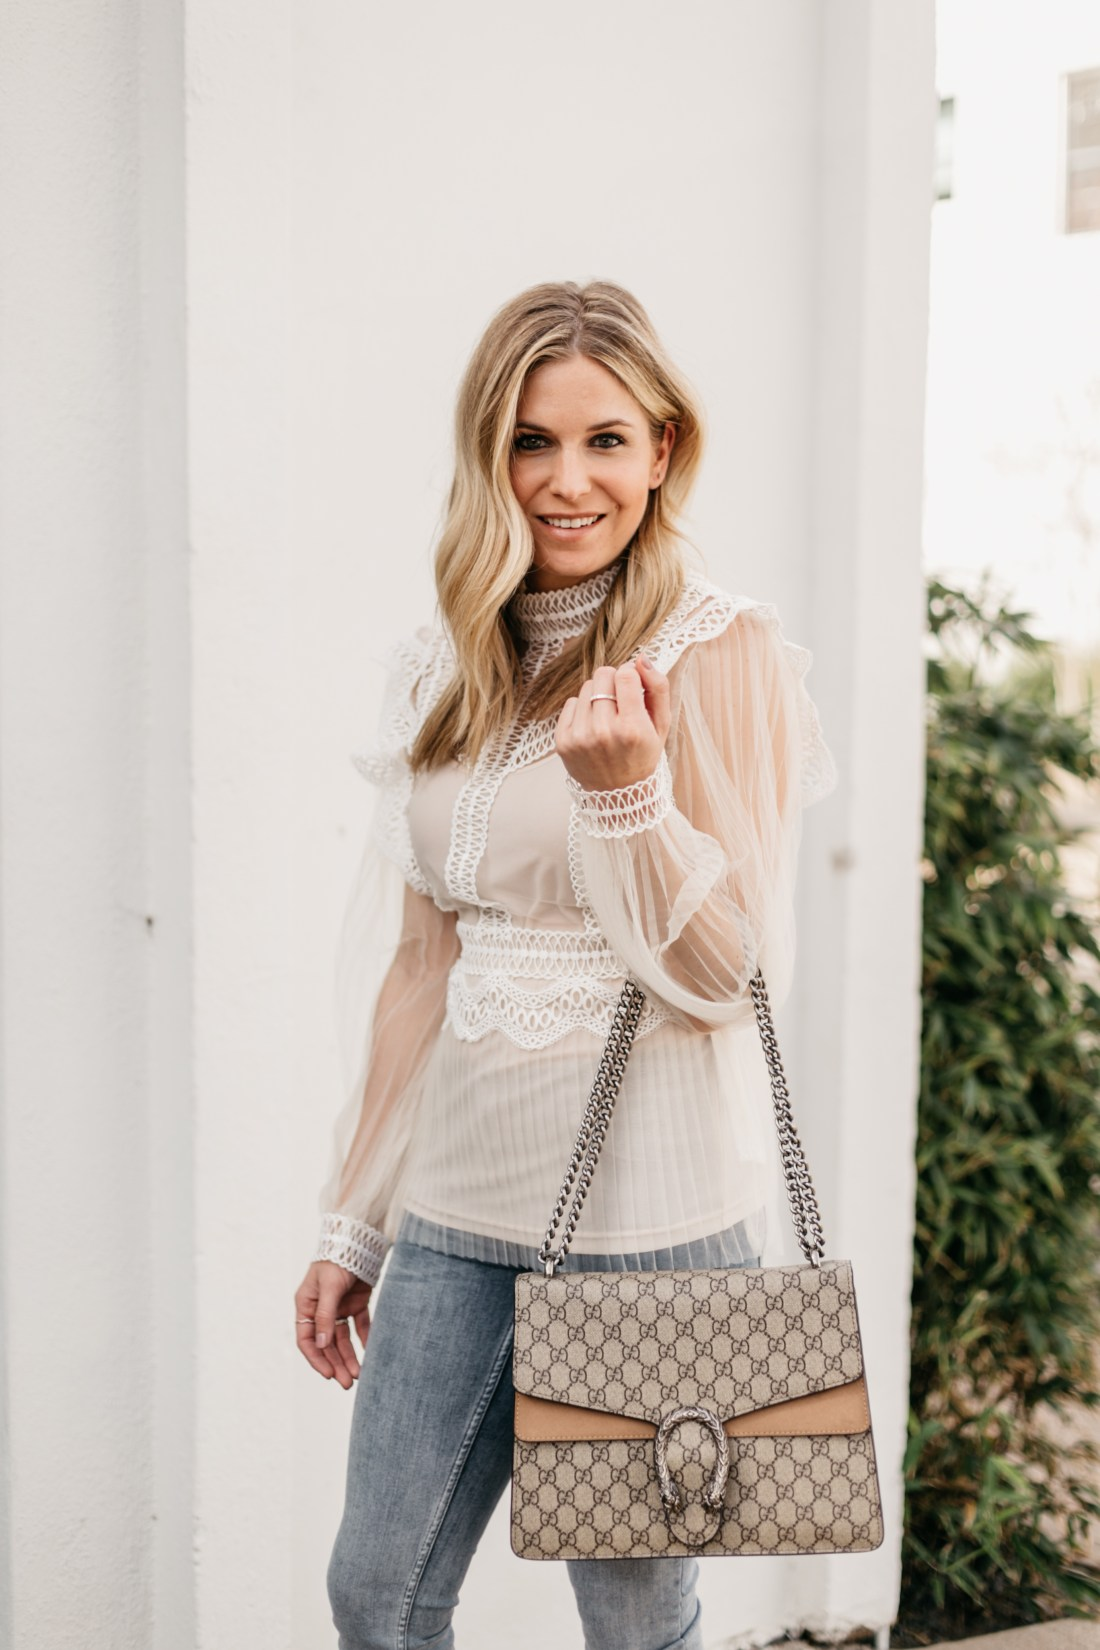 WHITE TOPS FOR SPRING